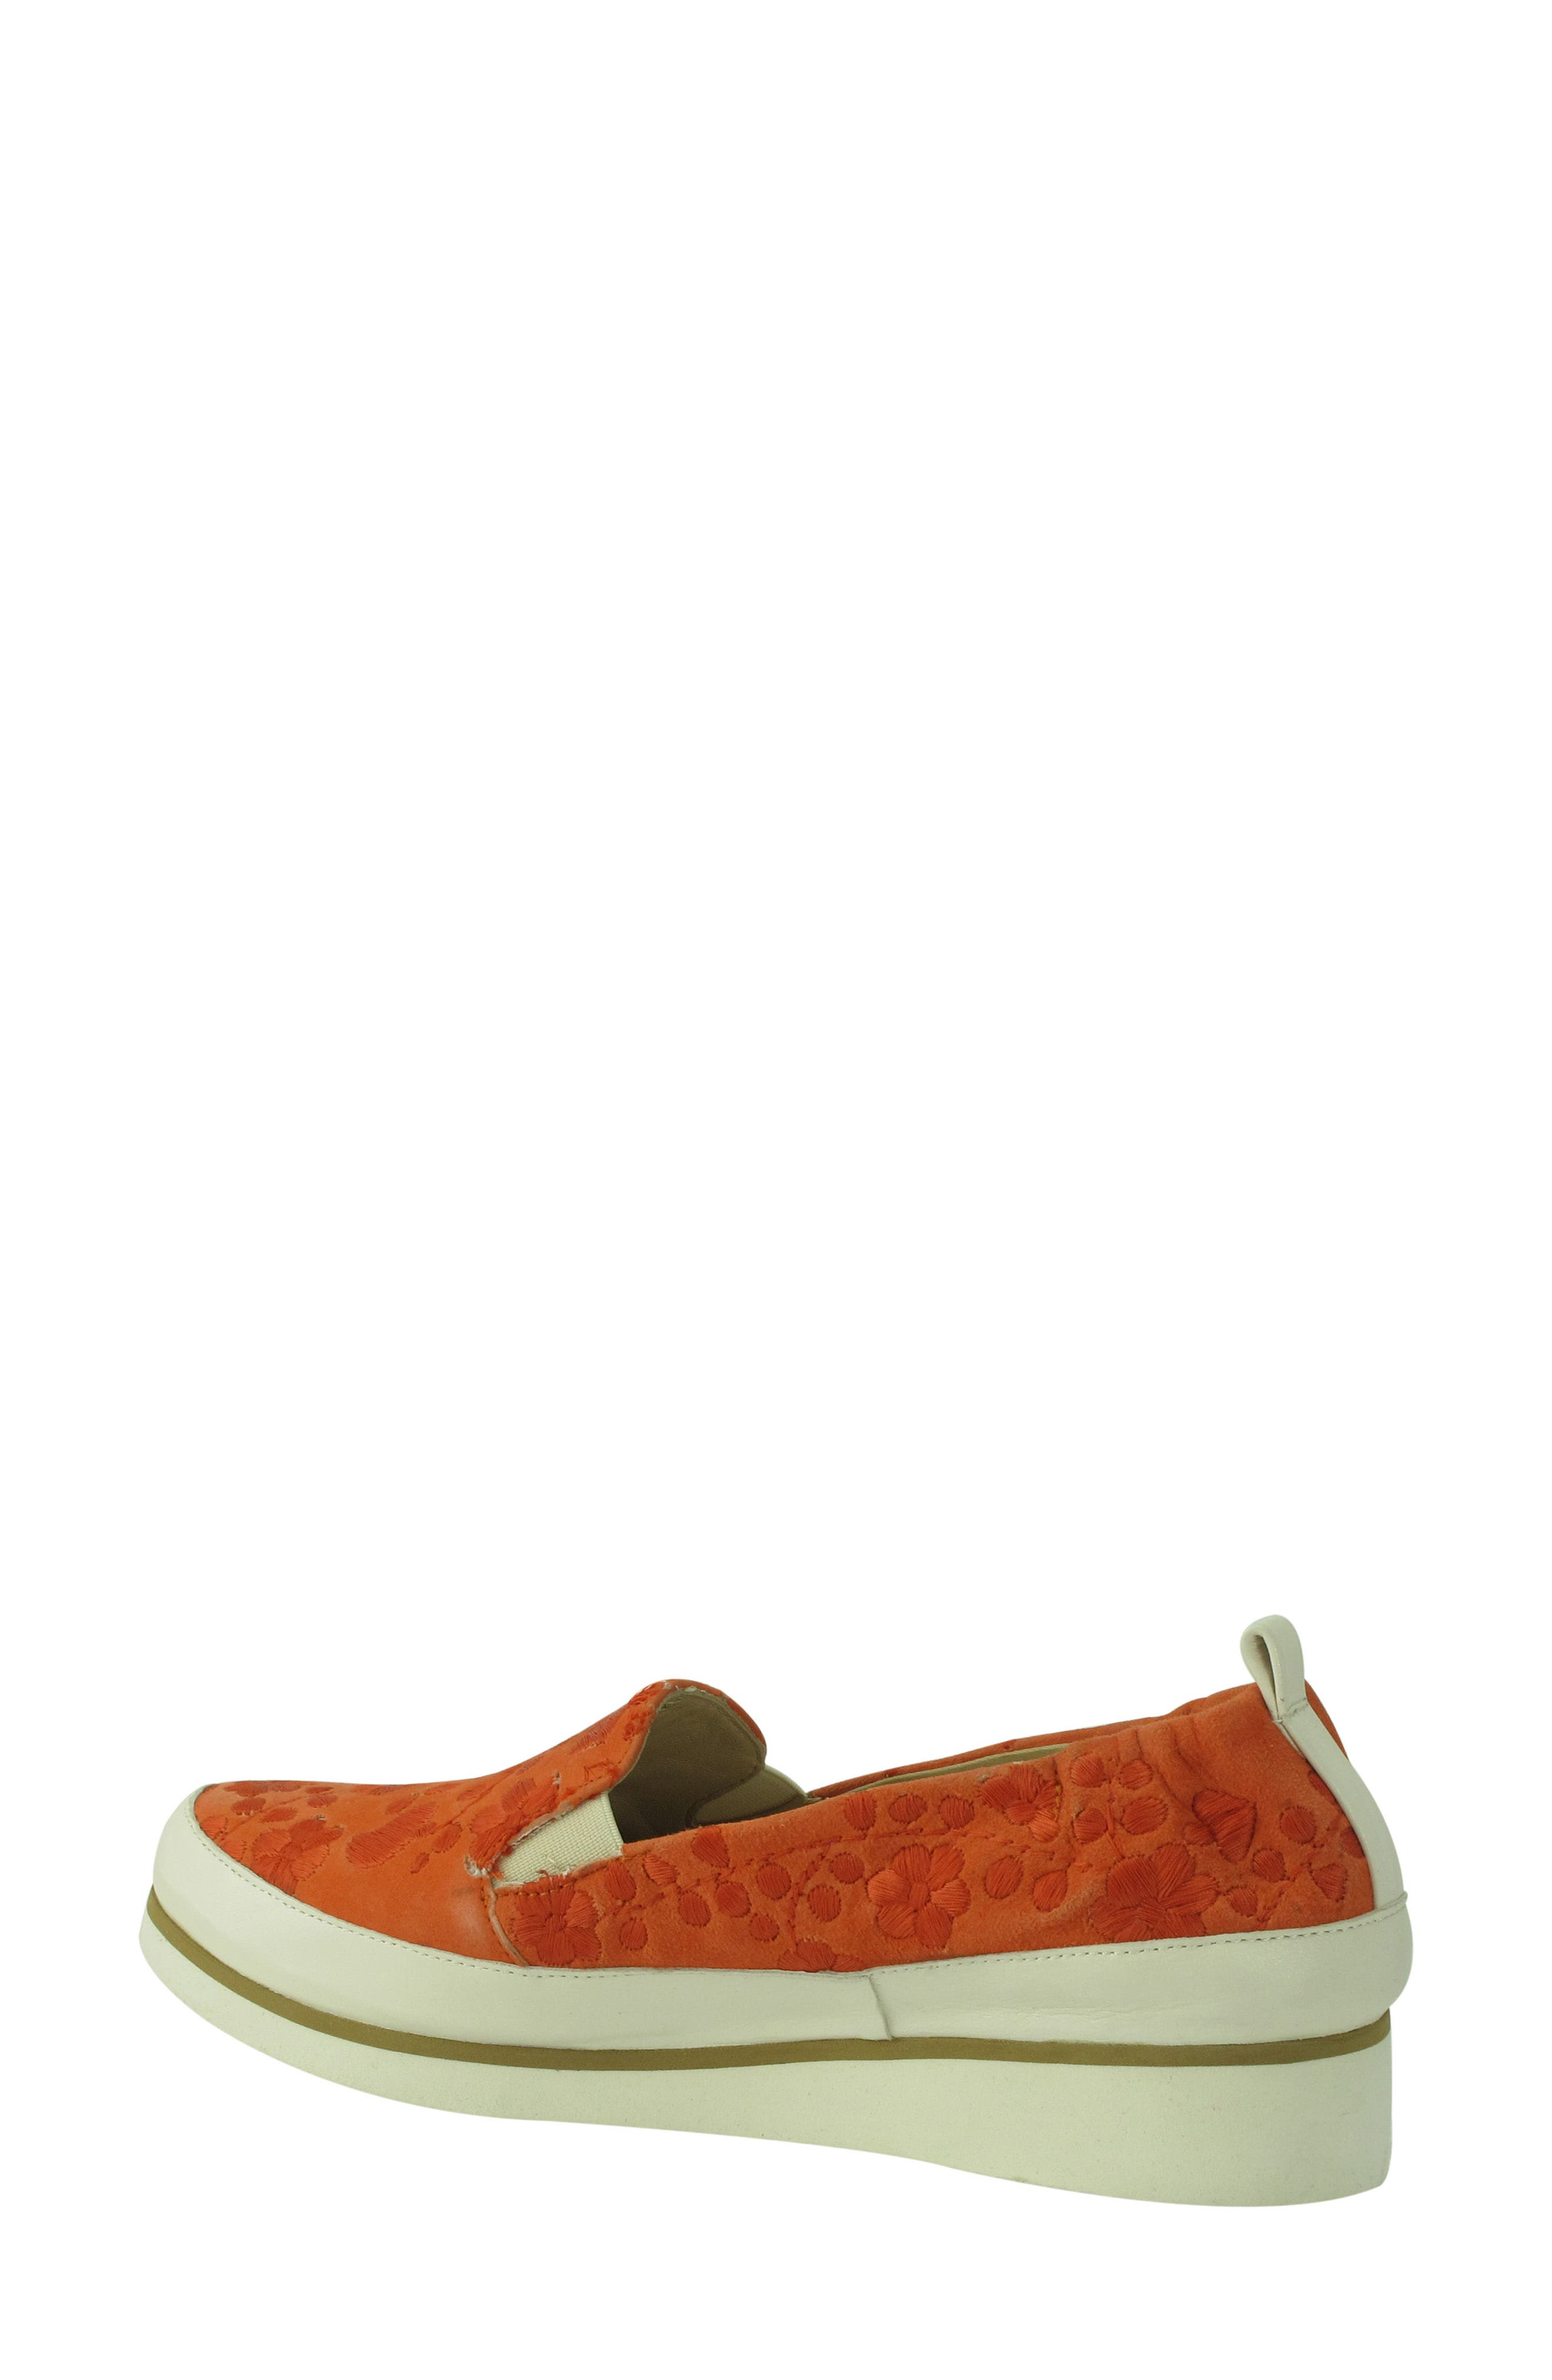 Nell Slip-On Sneaker,                             Alternate thumbnail 10, color,